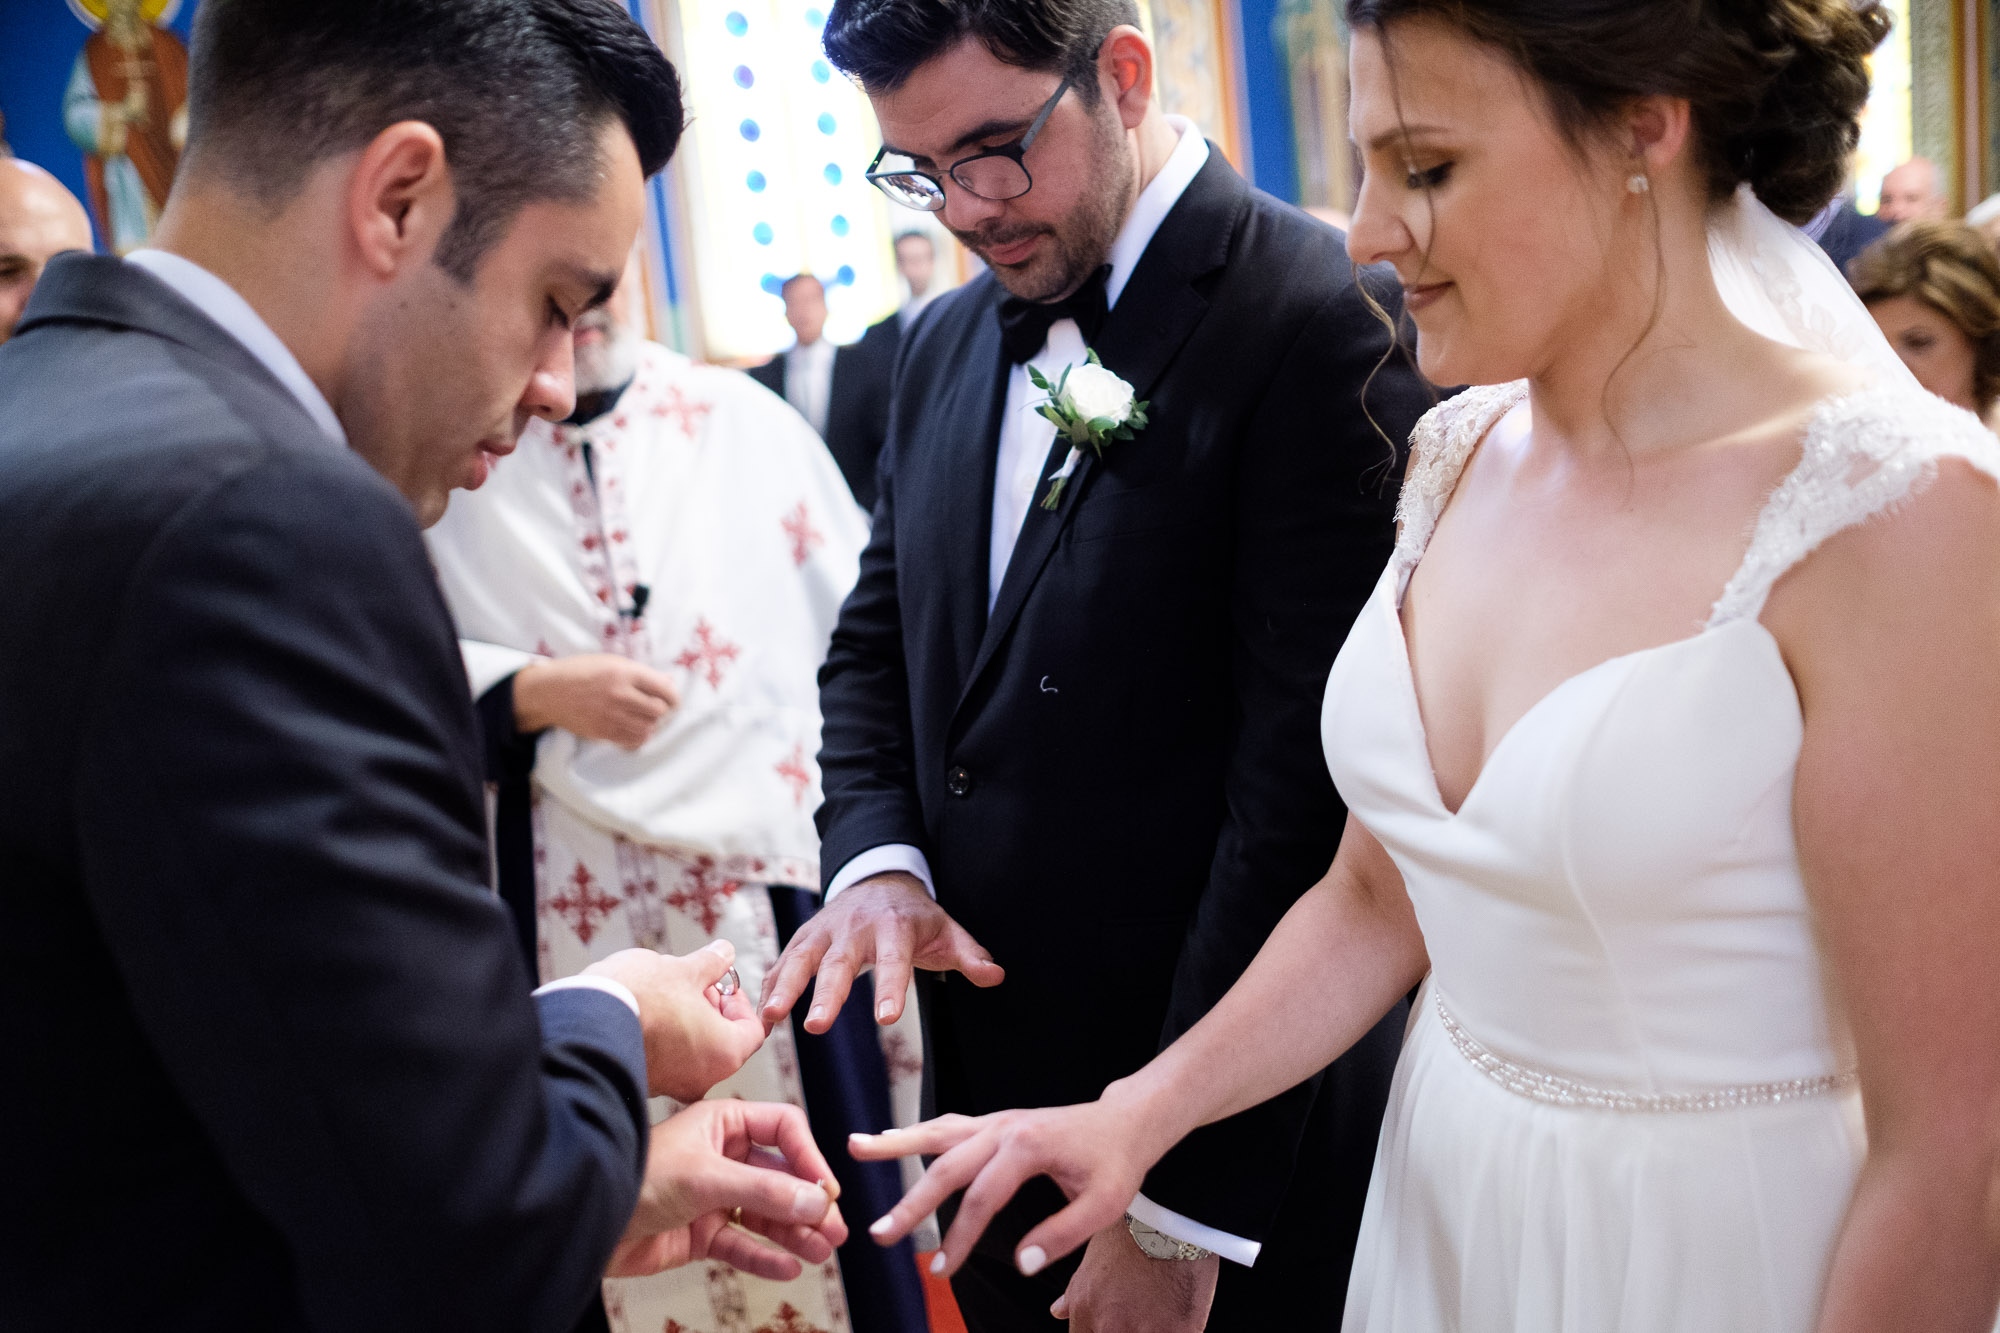 The best man exchanges the bride and grooms wedding rings during their Greek Orthodox wedding ceremony at St. Georges Greek Orthodox Church in Toronto.